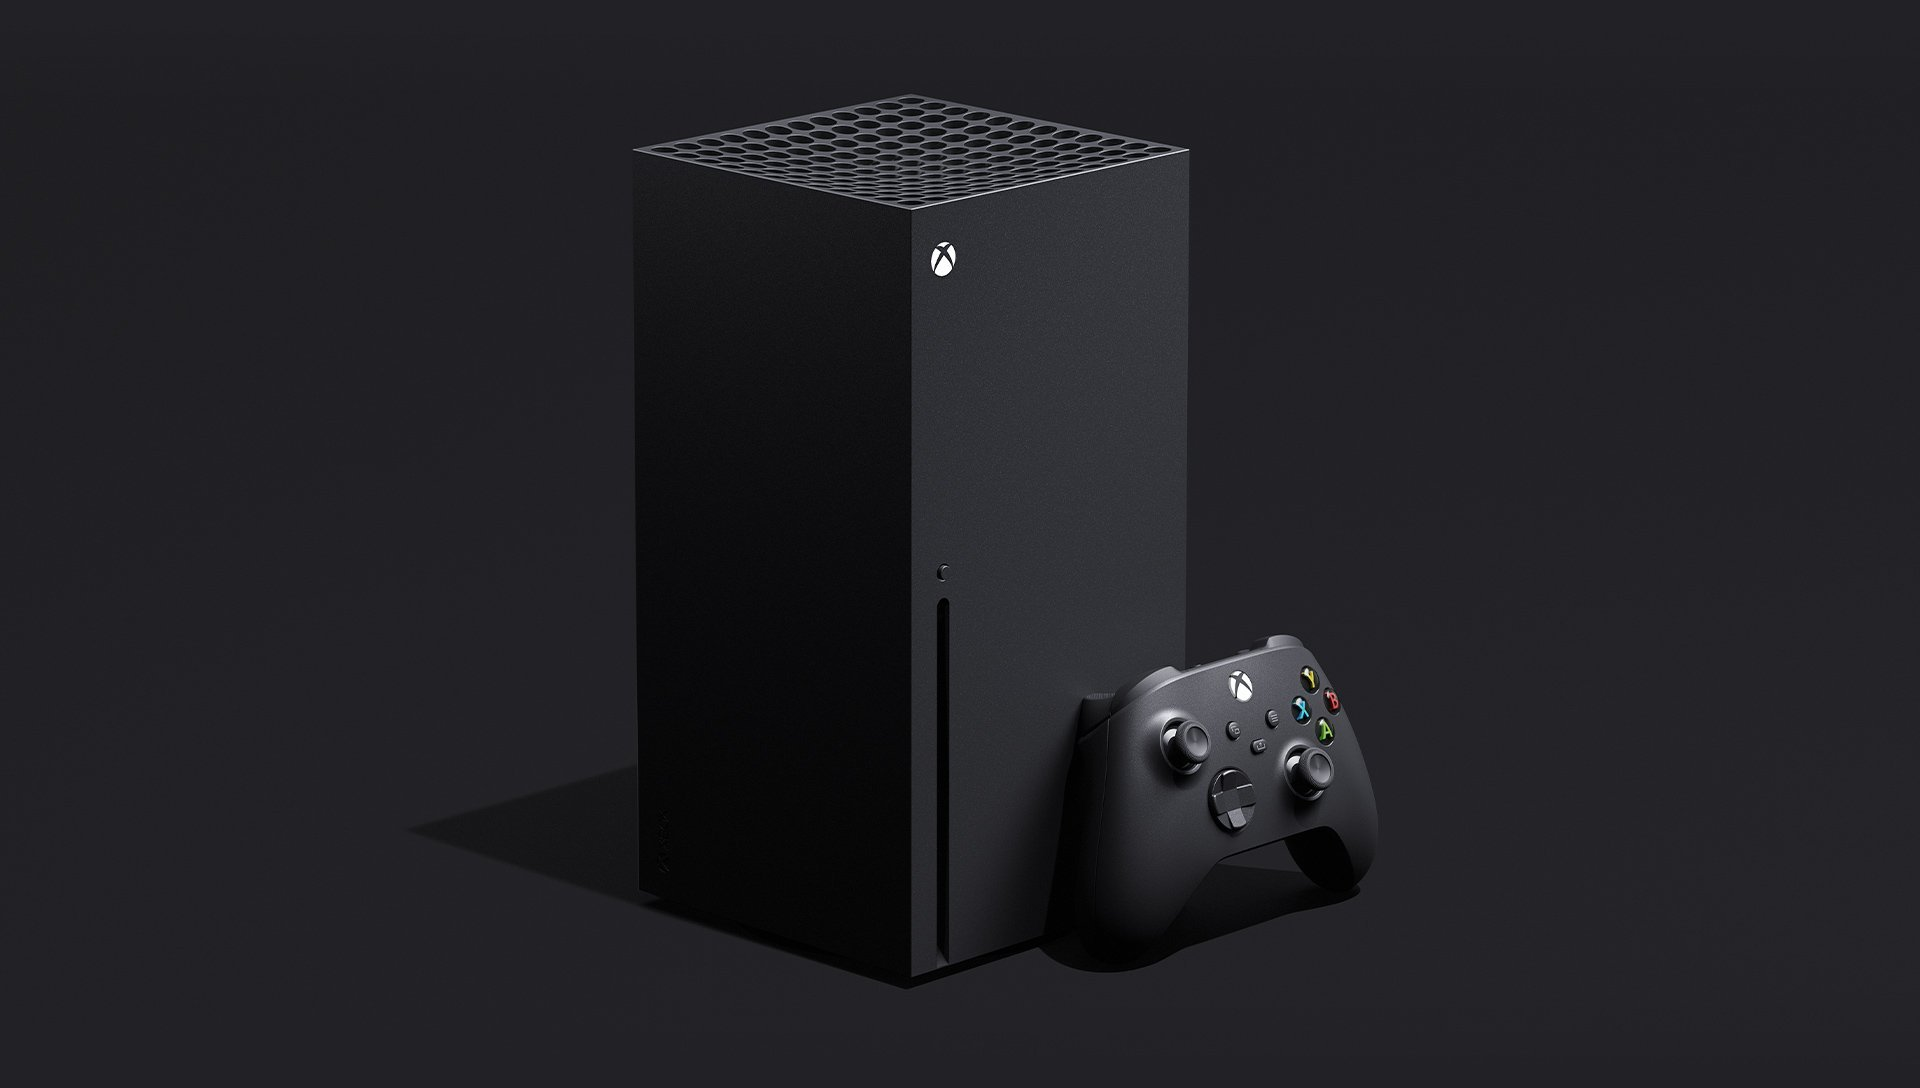 Xbox Series X : 12 TFlops, 120 fps, Smart Delivery, Quick Resume, Microsoft donne des détails